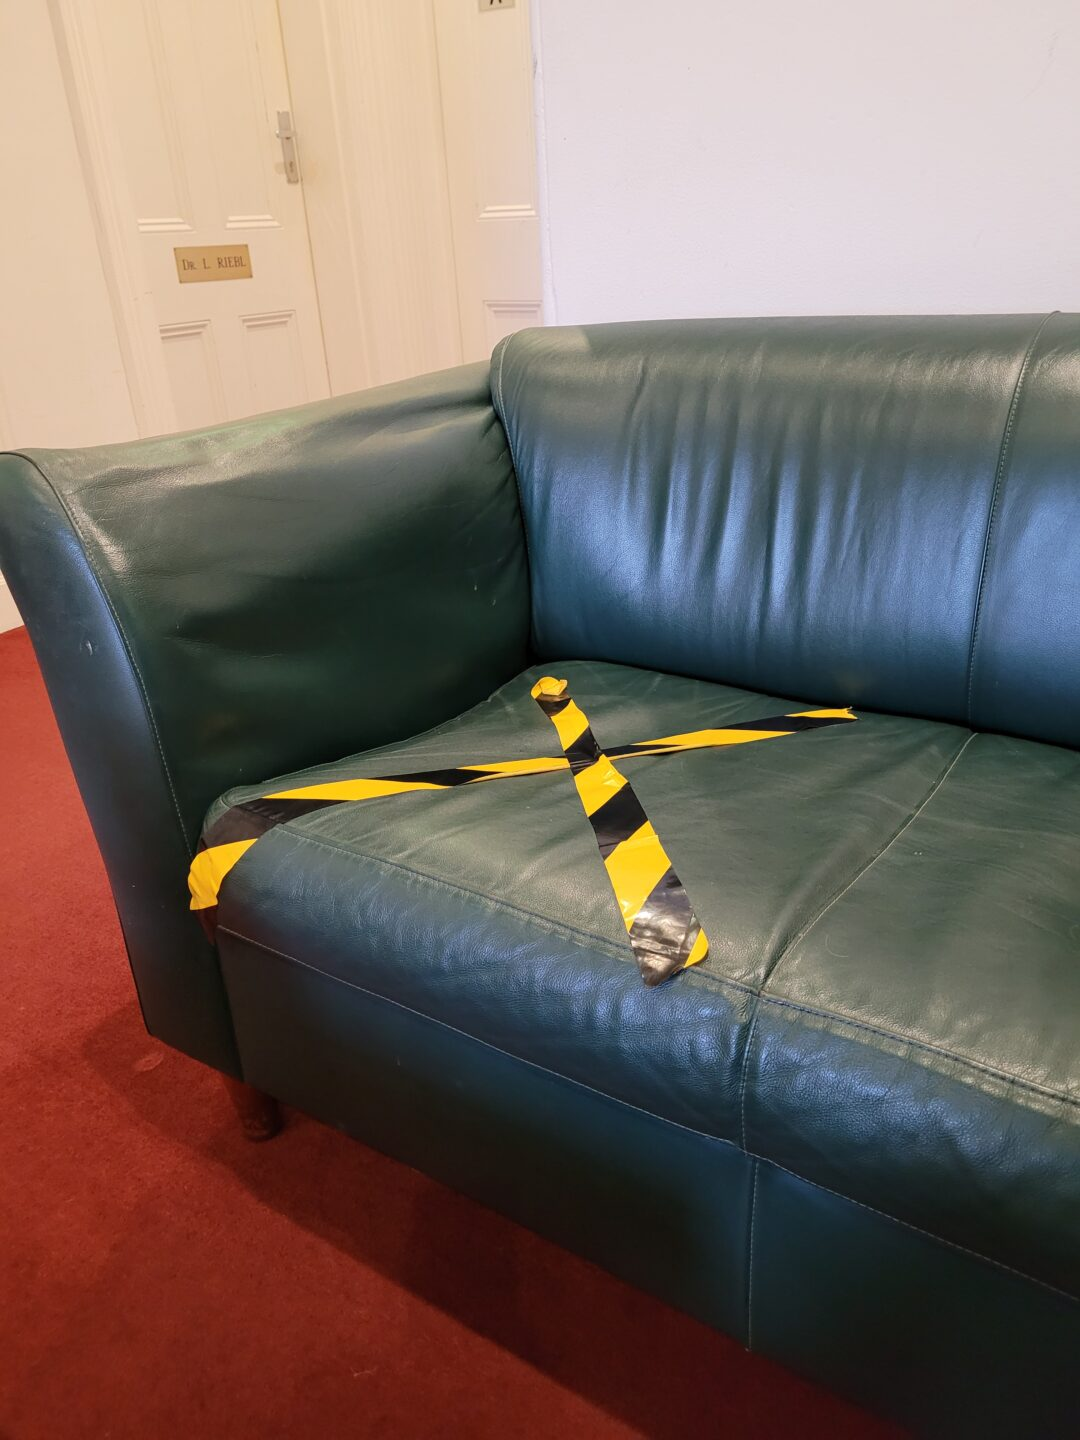 A forest green couch with black and yellow tape in the shape of an X to mark where a visitor can not sit.